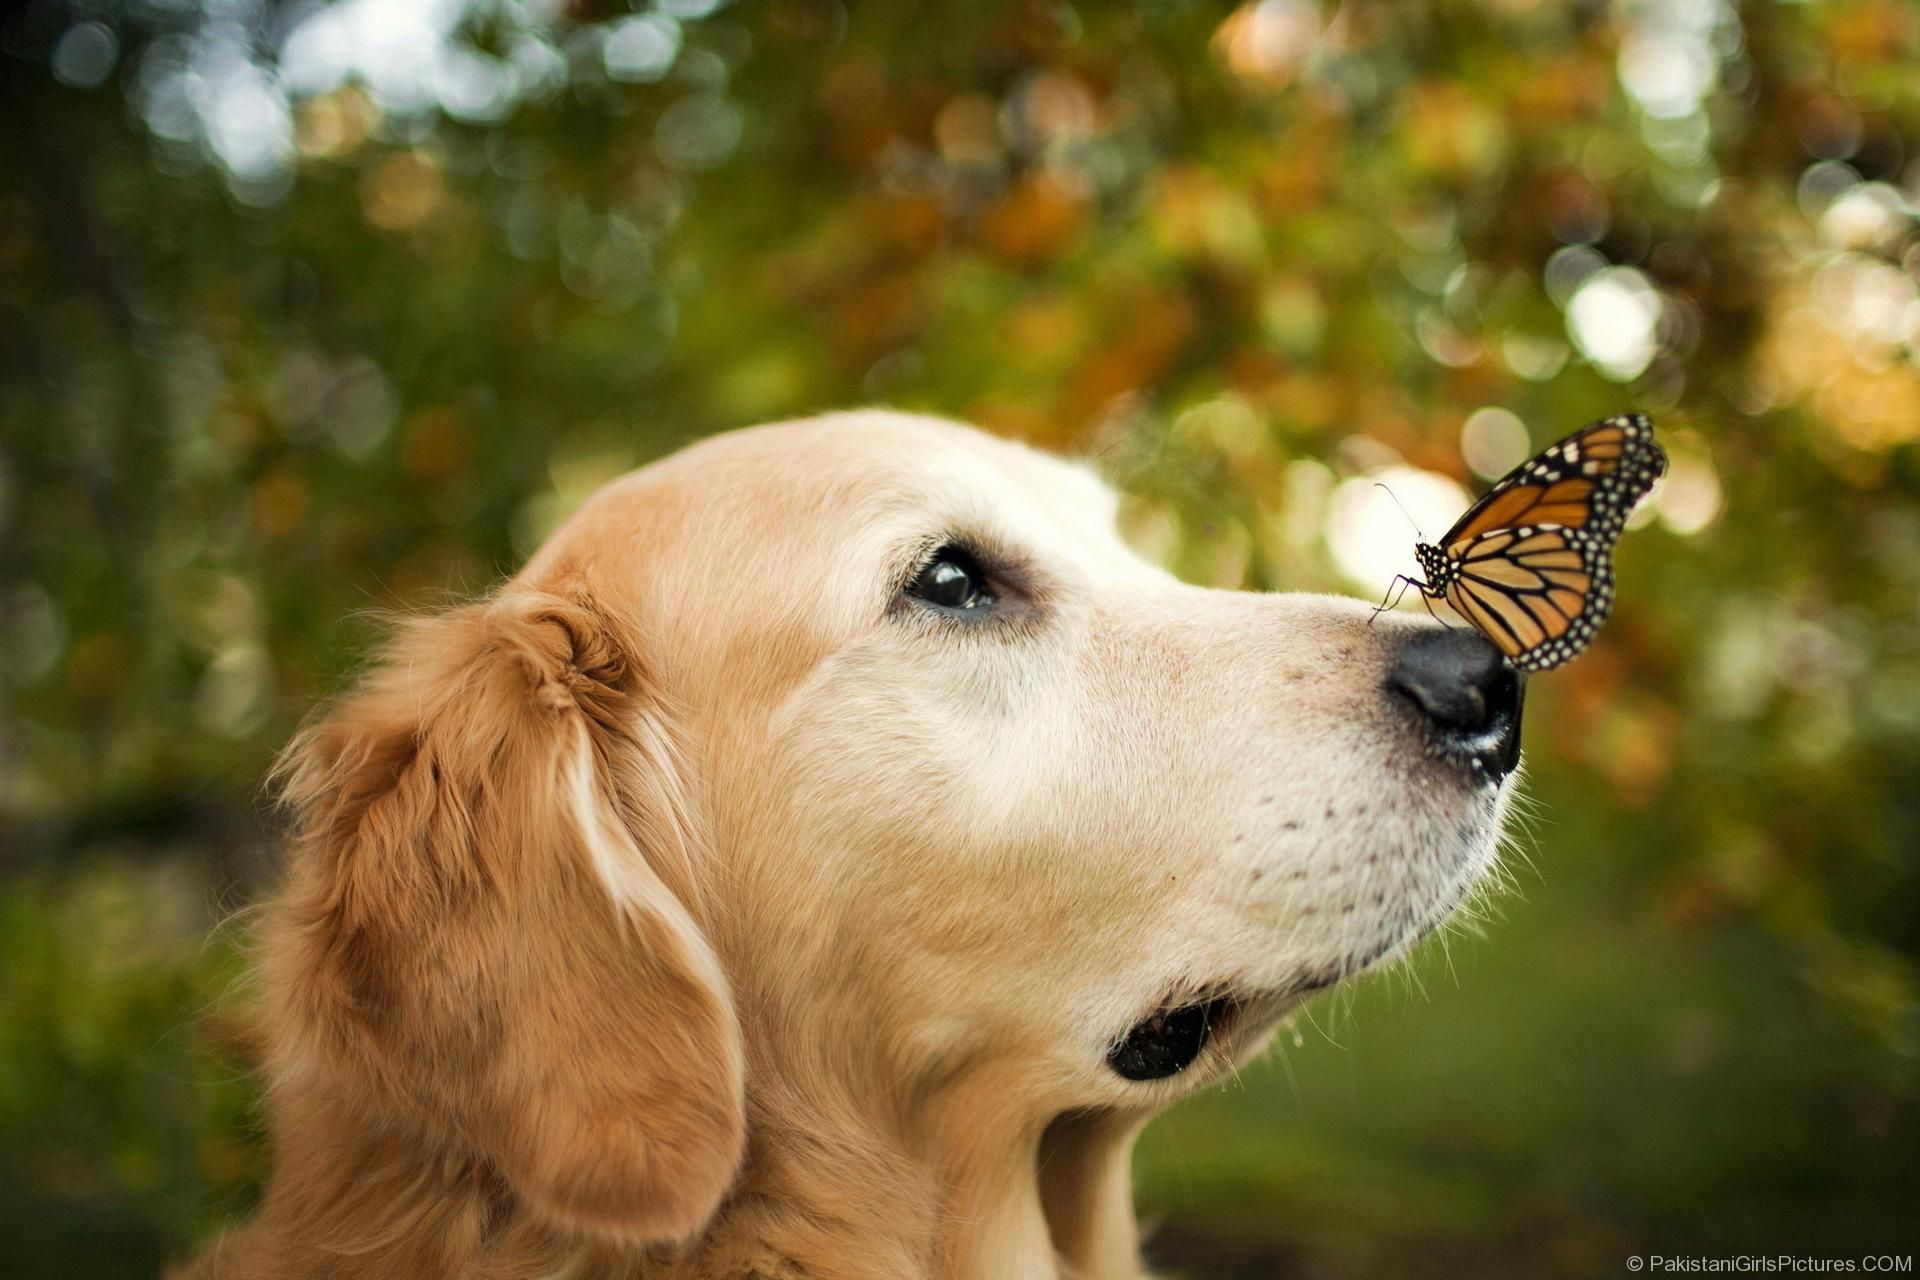 Beautiful dogs wallpapers yahoo image search results adorable